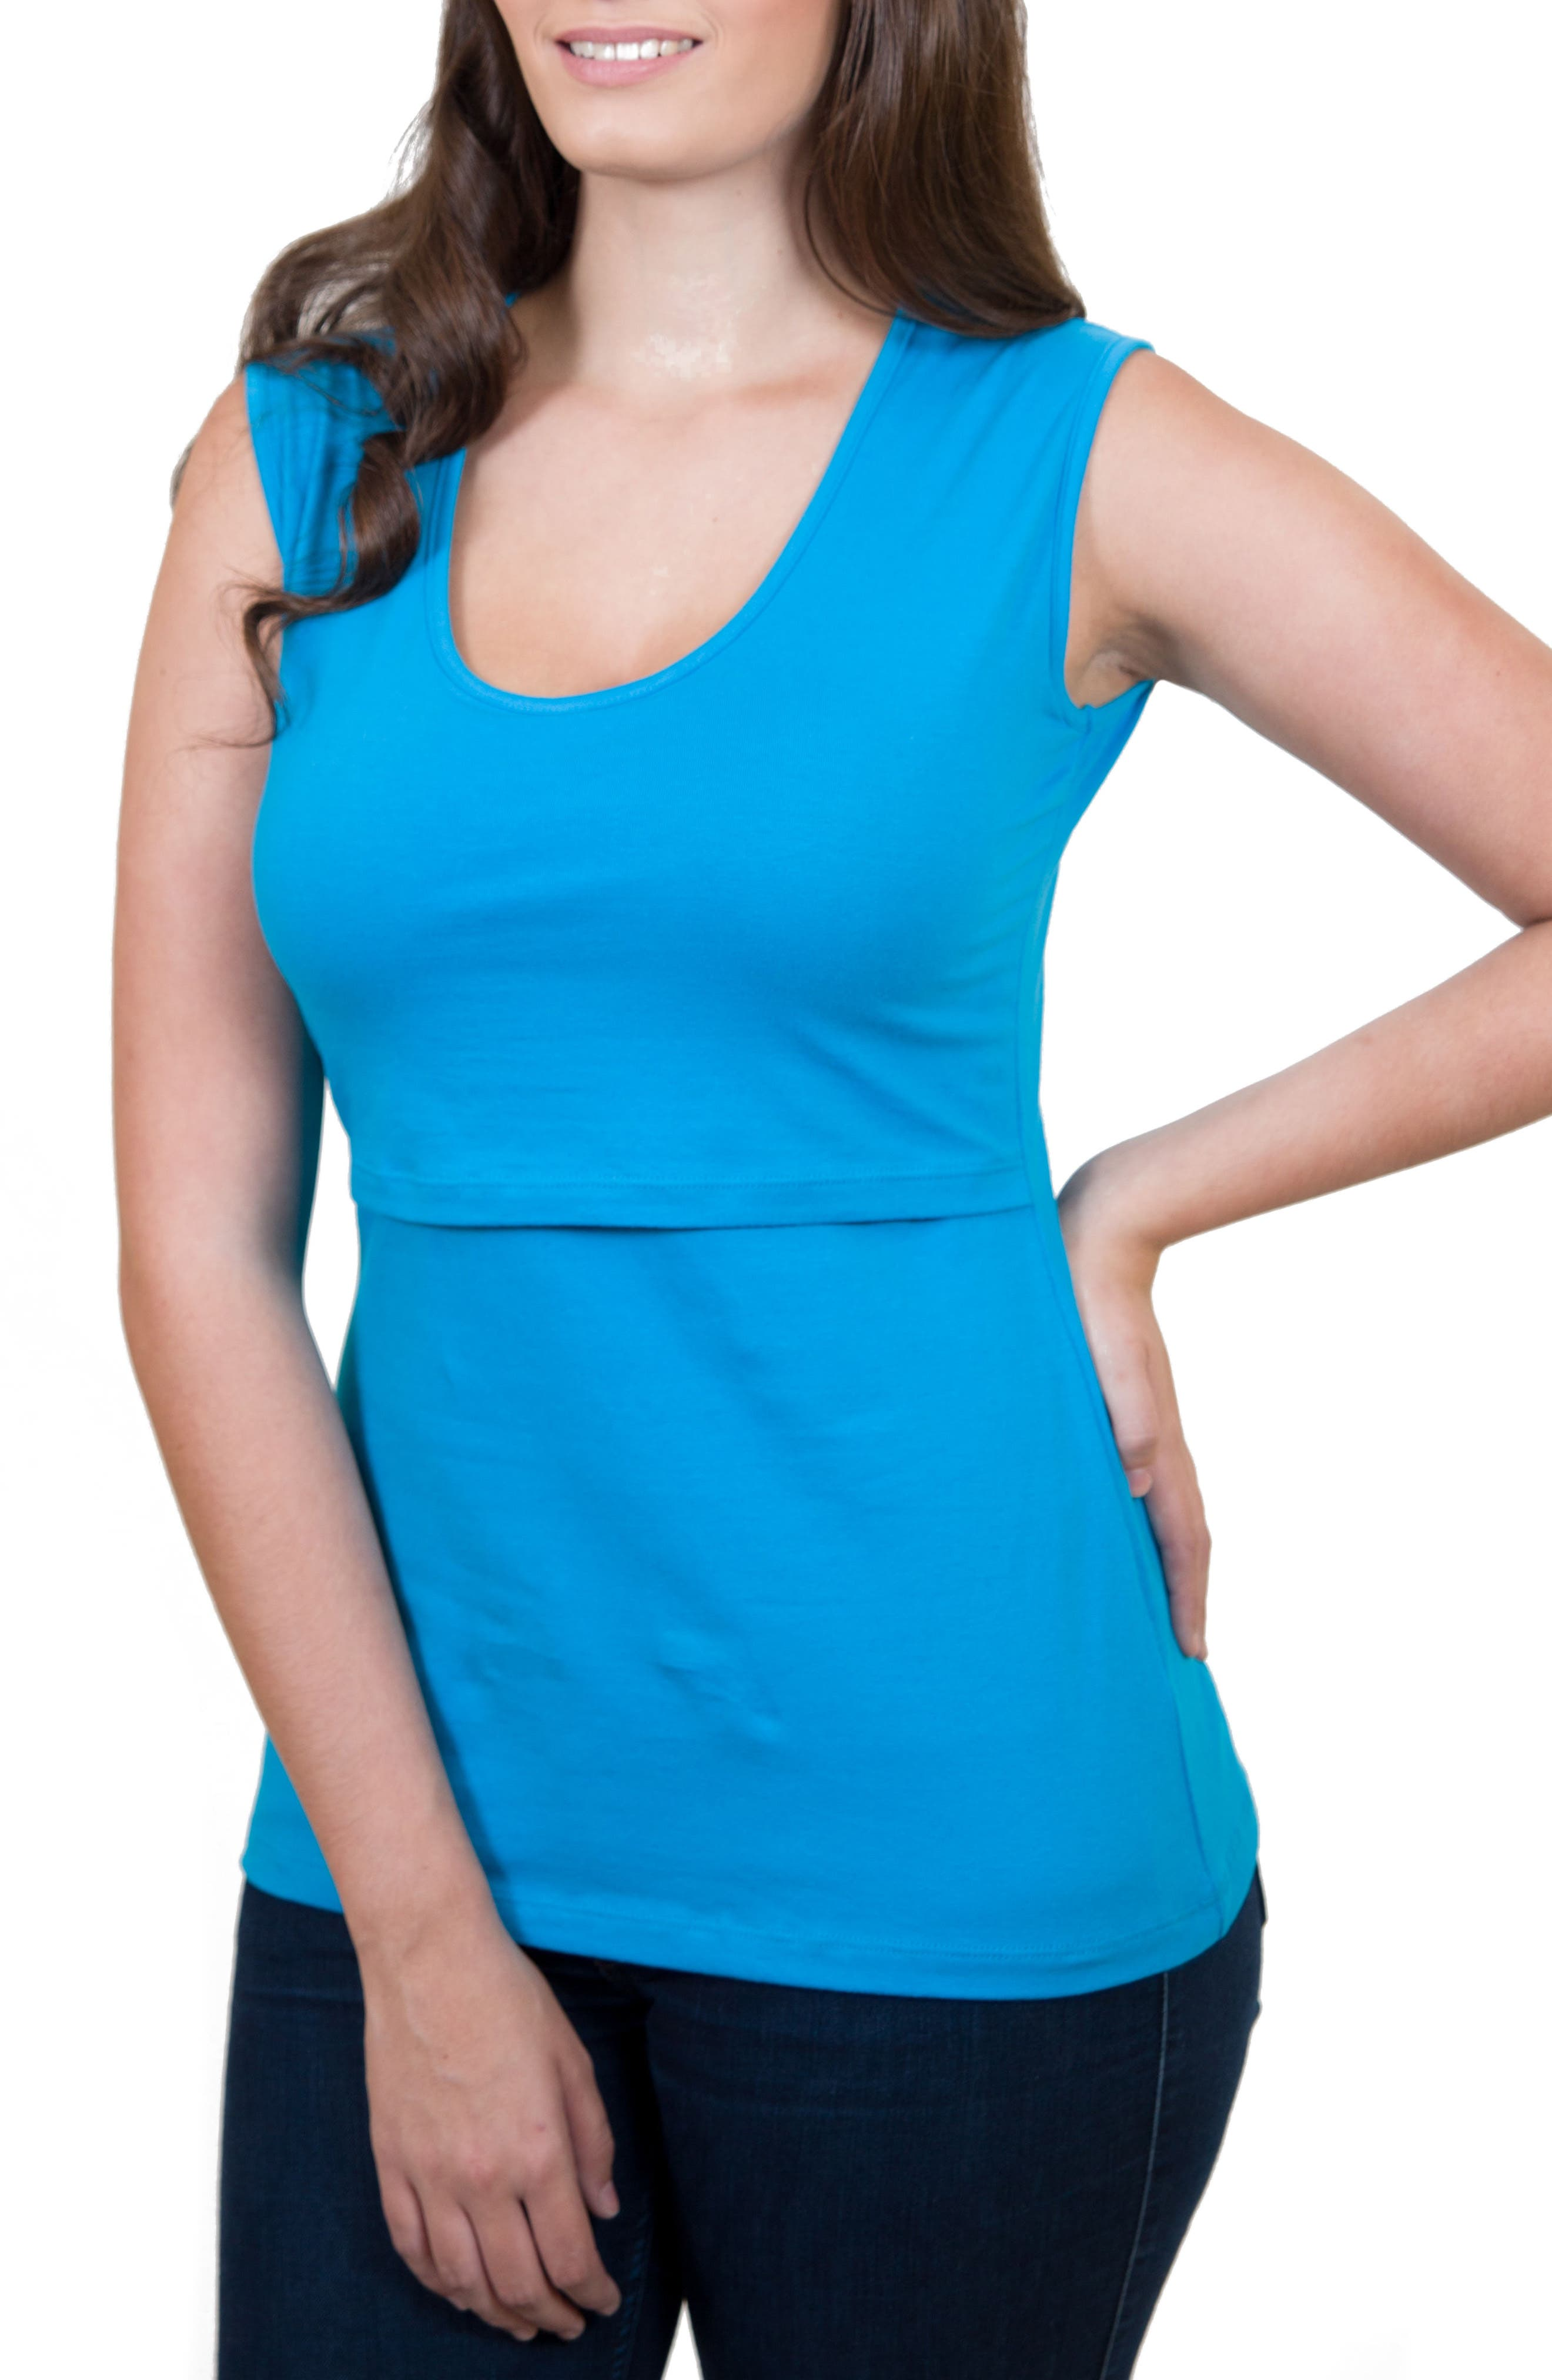 Mamawear Scoop Neck Nursing Tank,                             Main thumbnail 1, color,                             Turquoise